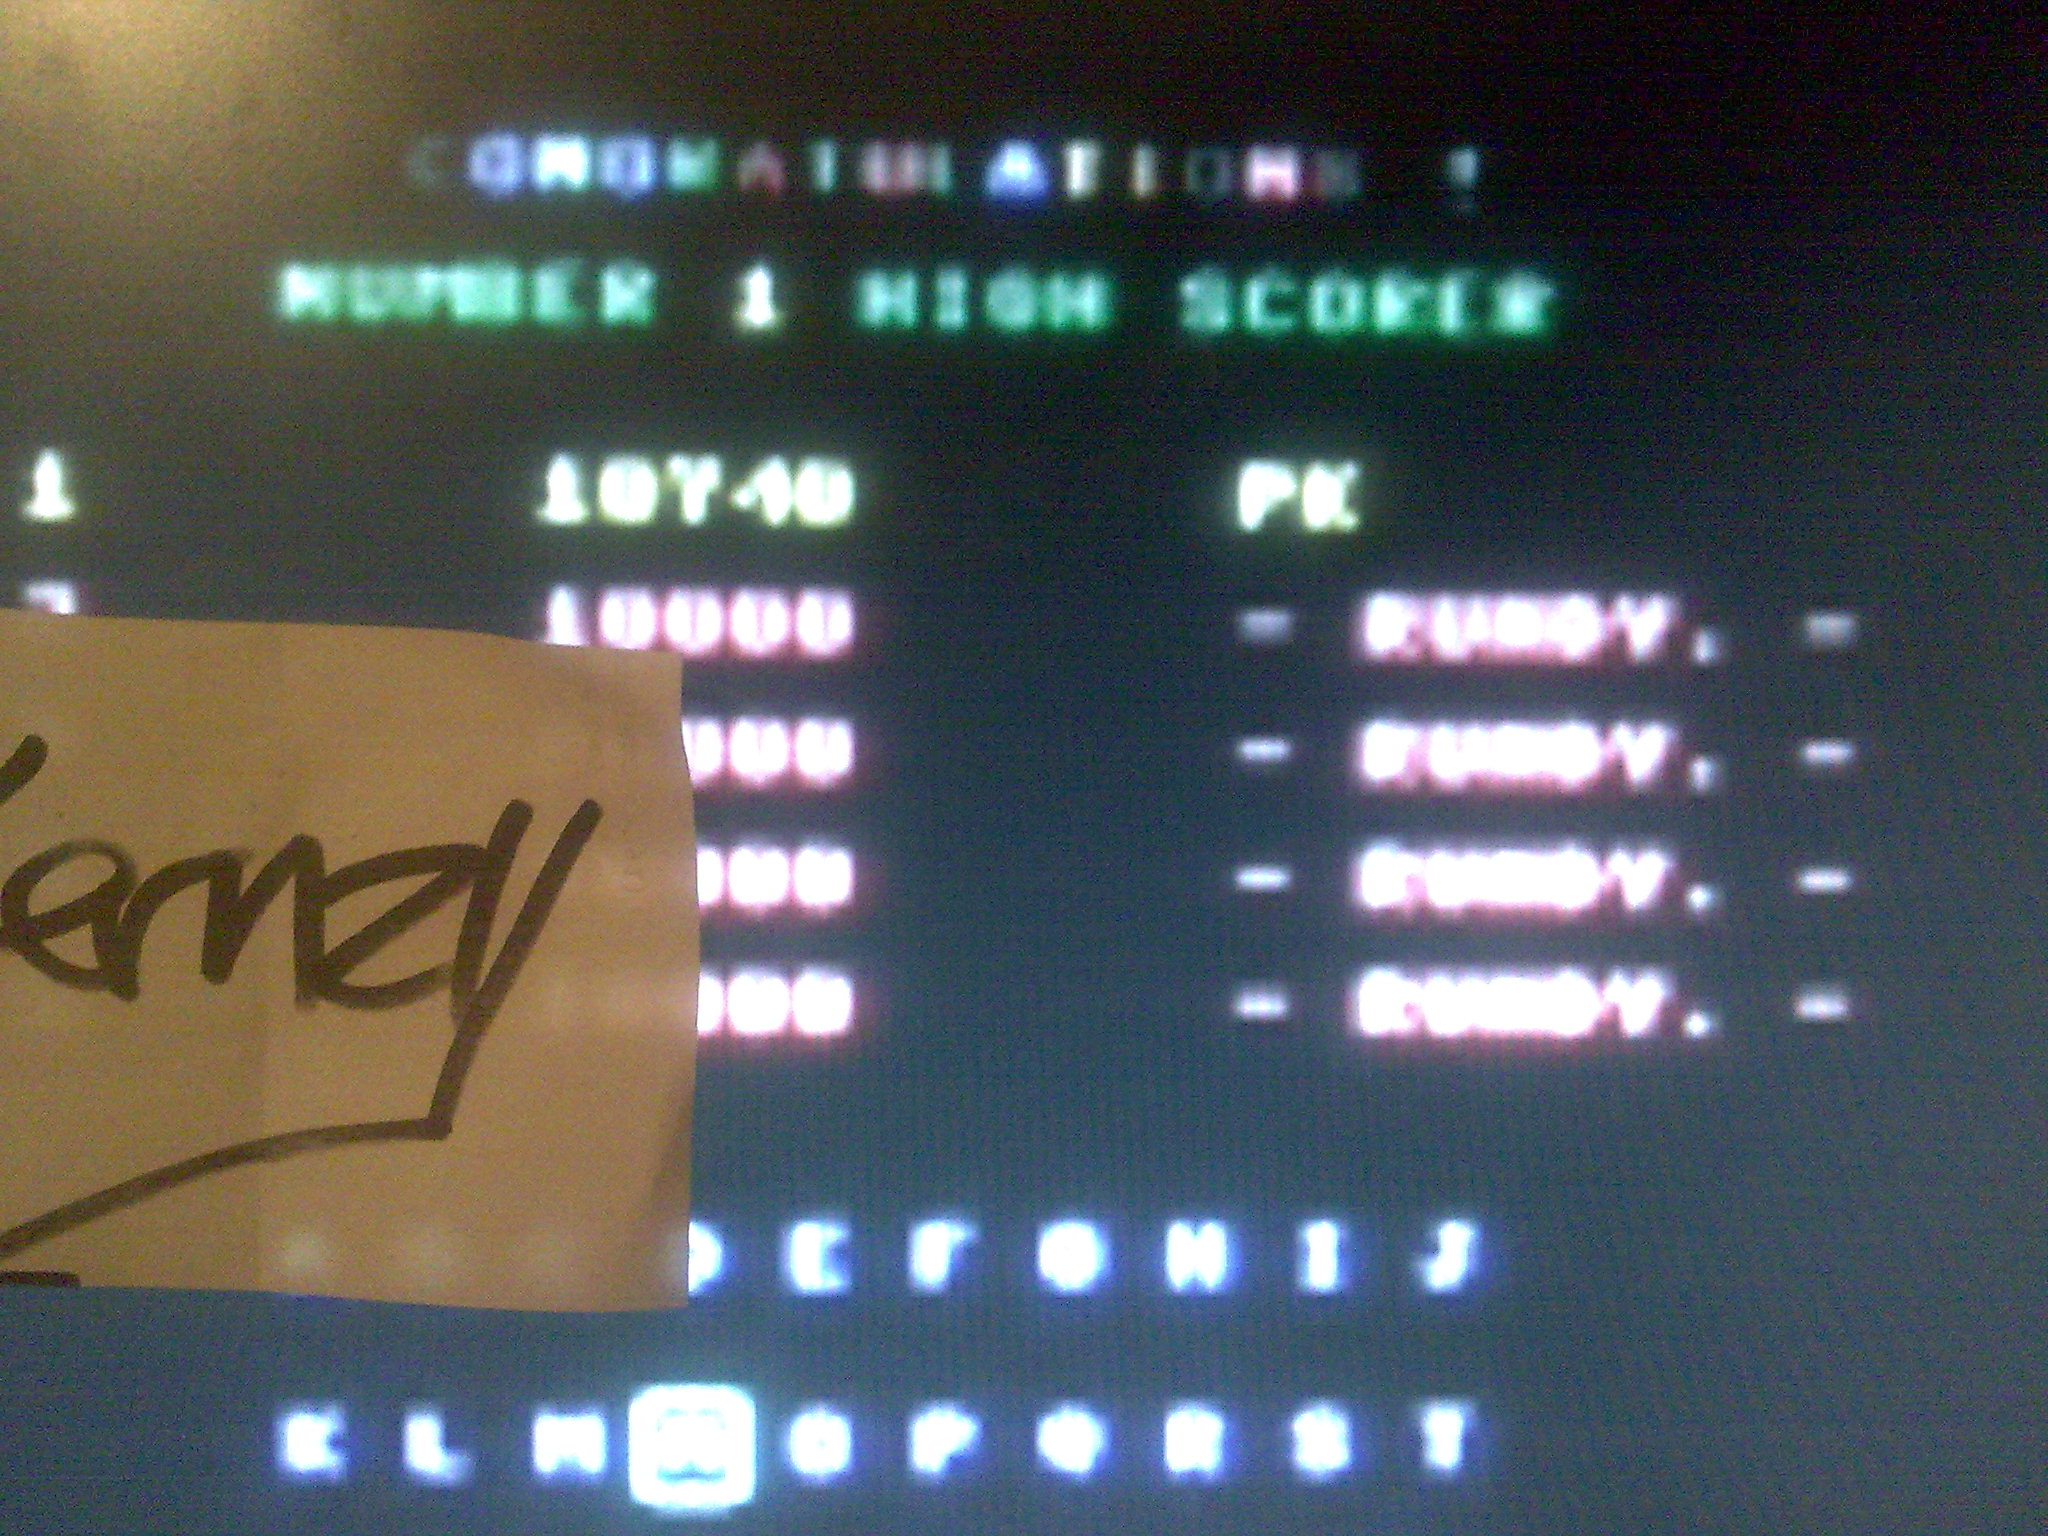 kernzy: Guzzler (Commodore 64 Emulated) 10,740 points on 2014-08-26 16:50:57